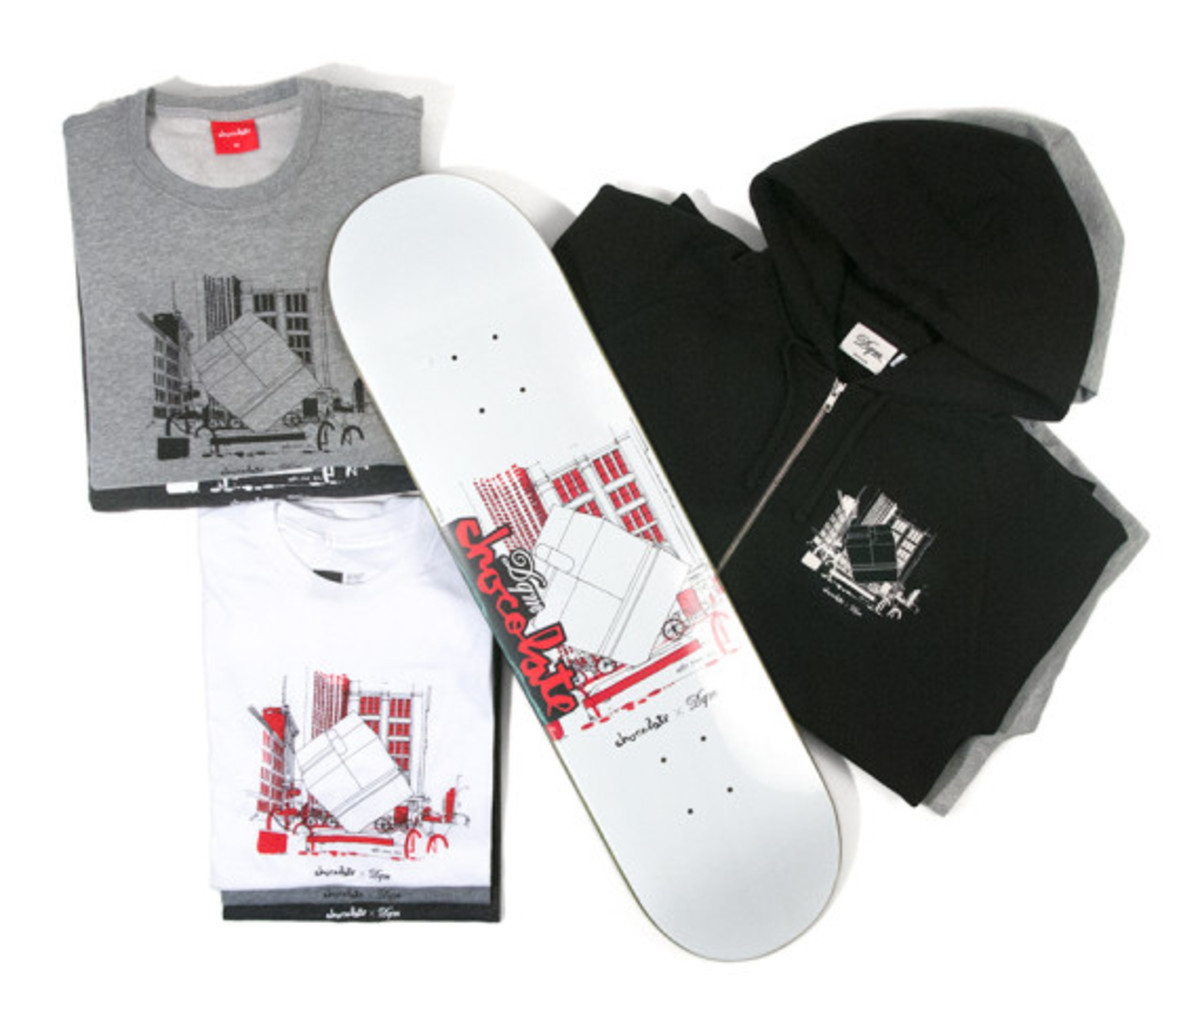 dqm-chocolate-skateboards-capsule-collection-09